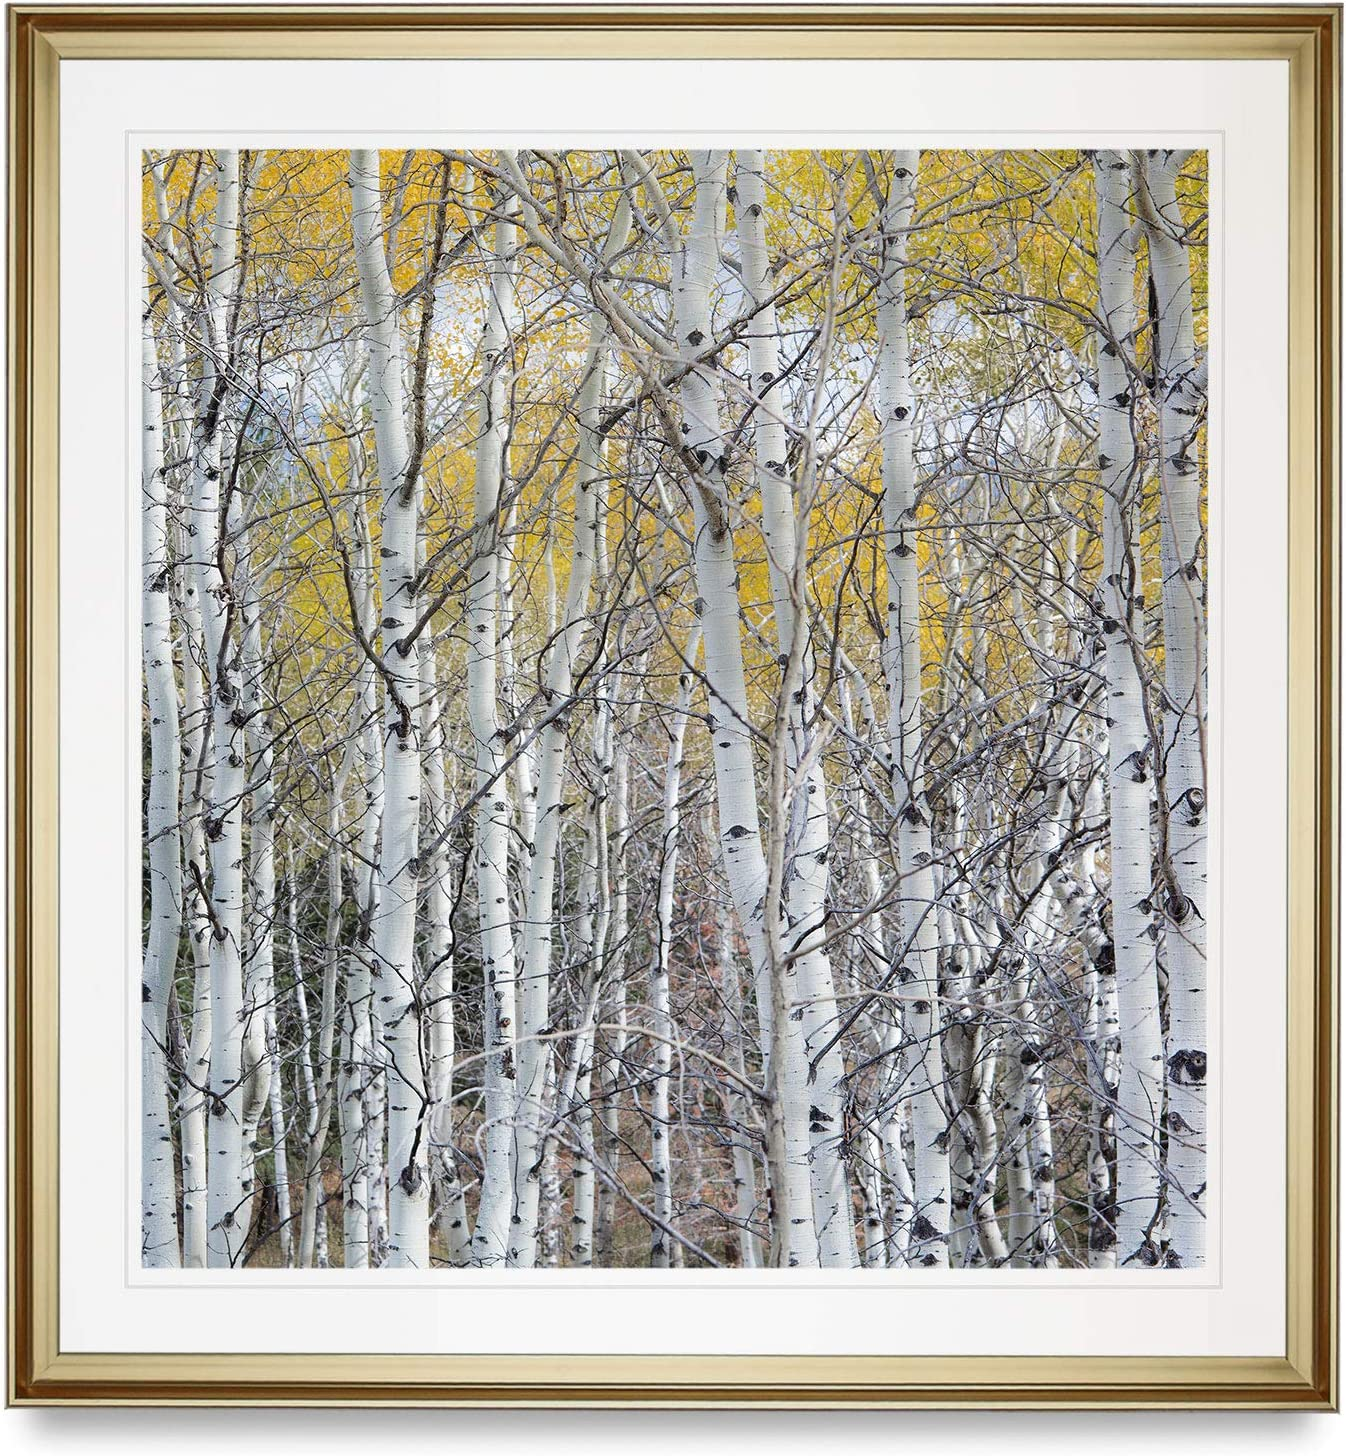 WEXFORD HOME Colorado Rocky Mountain Aspen Tree Pictures Golden Forest Framed Art Prints Landscape Painting Home Wall Decor, 16X16